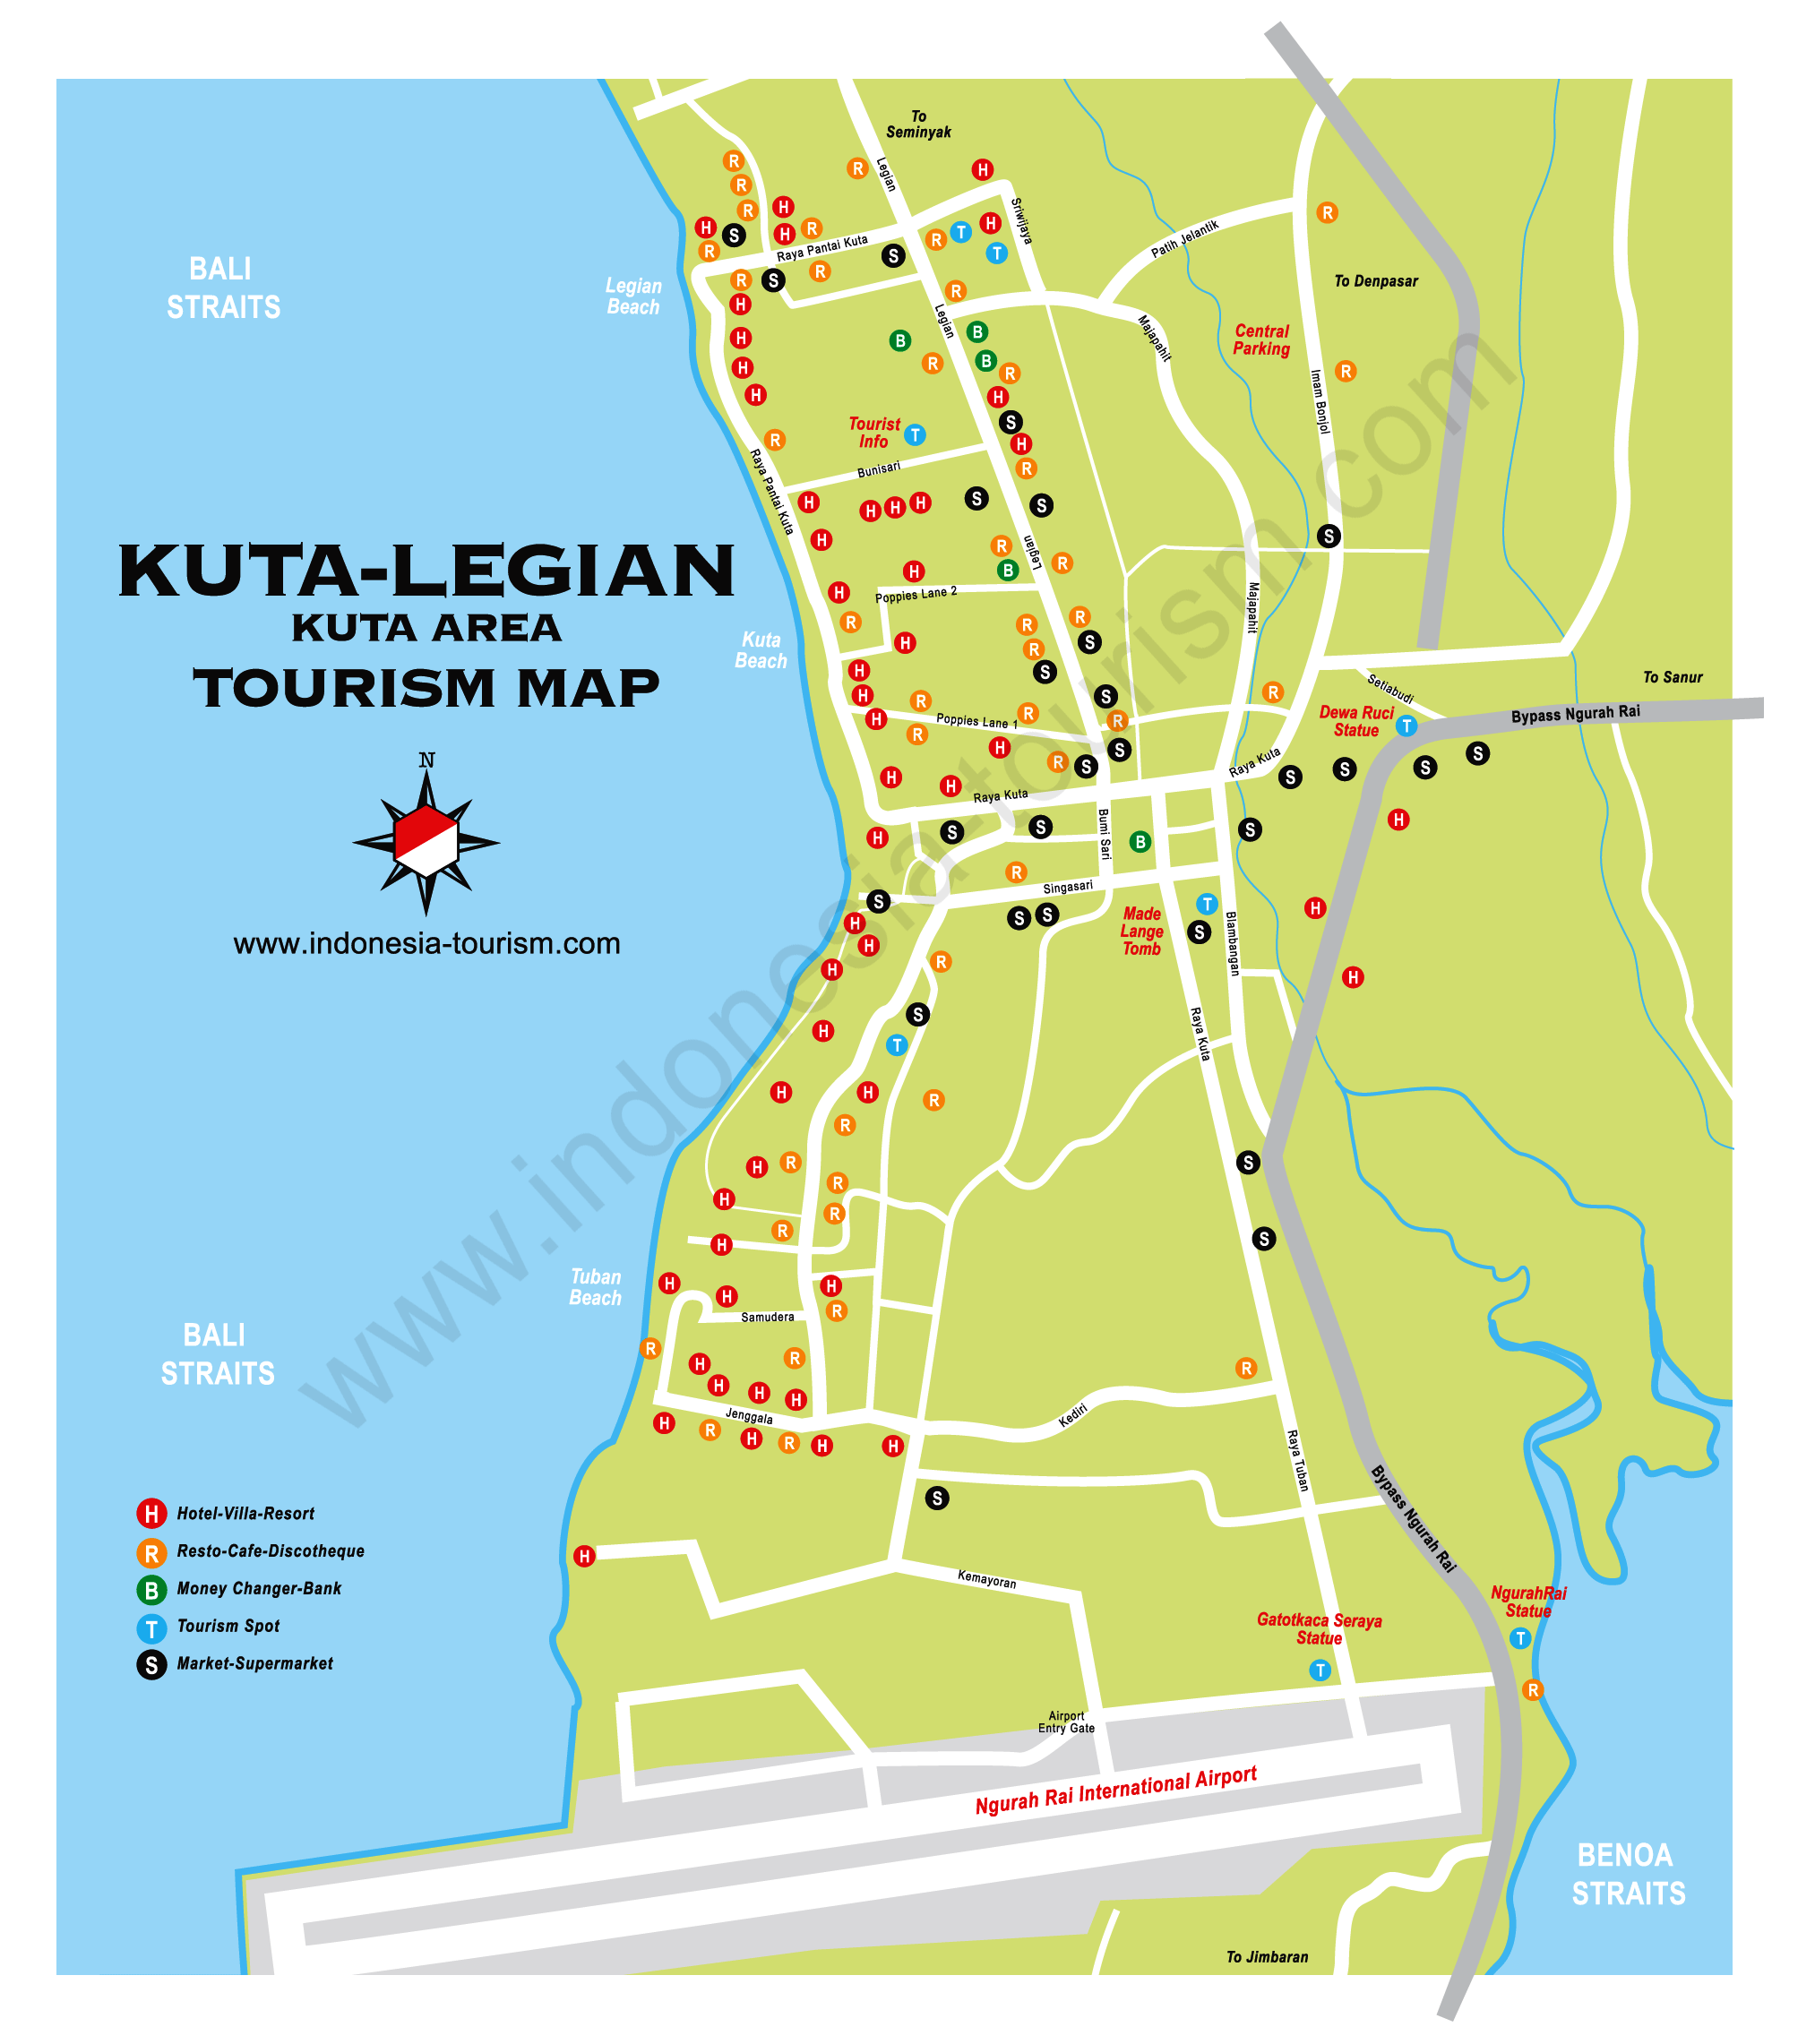 kuta surfing beach tourism hotels map,pantai kuta bali,kuta weather forecast 15 day,kuta weather 10 day forecast,kuta weather in january december september february november,map of kuta bali,kuta bali tourism hotels map,weather forecast in Kuta bali